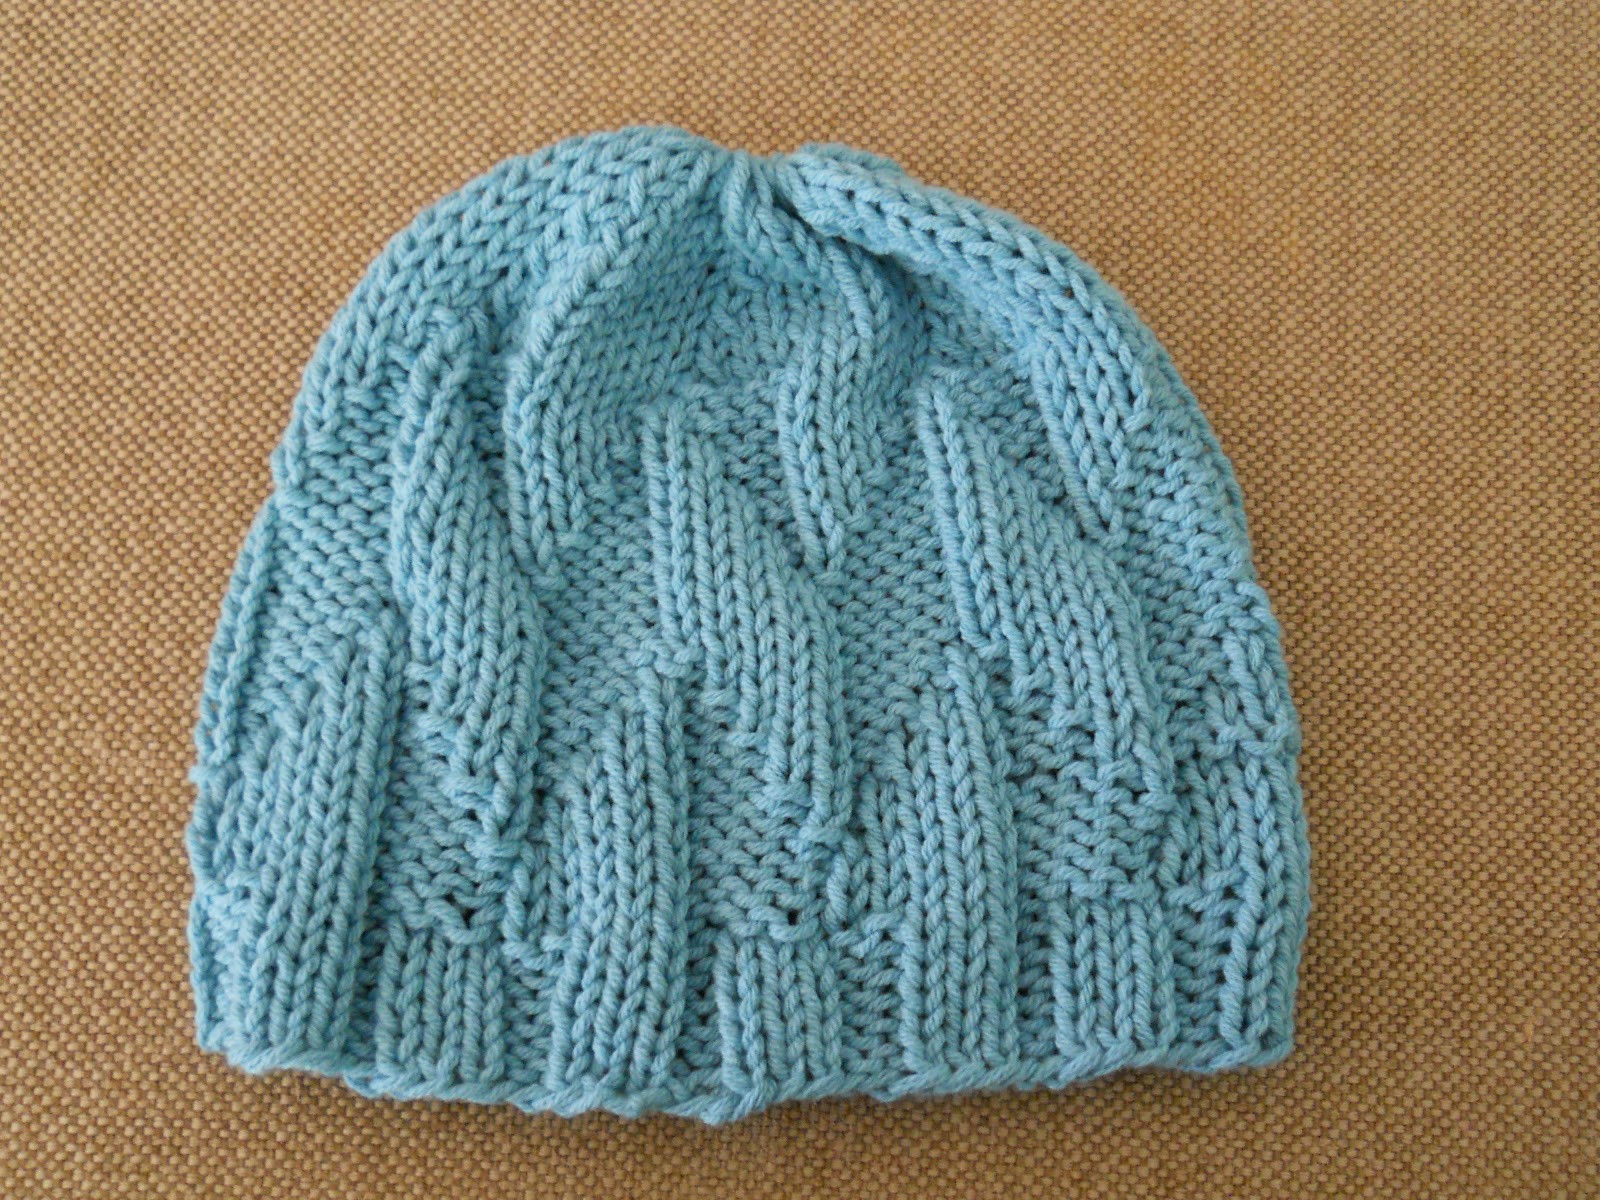 Knitting with Schnapps Introducing the Waves of Hope